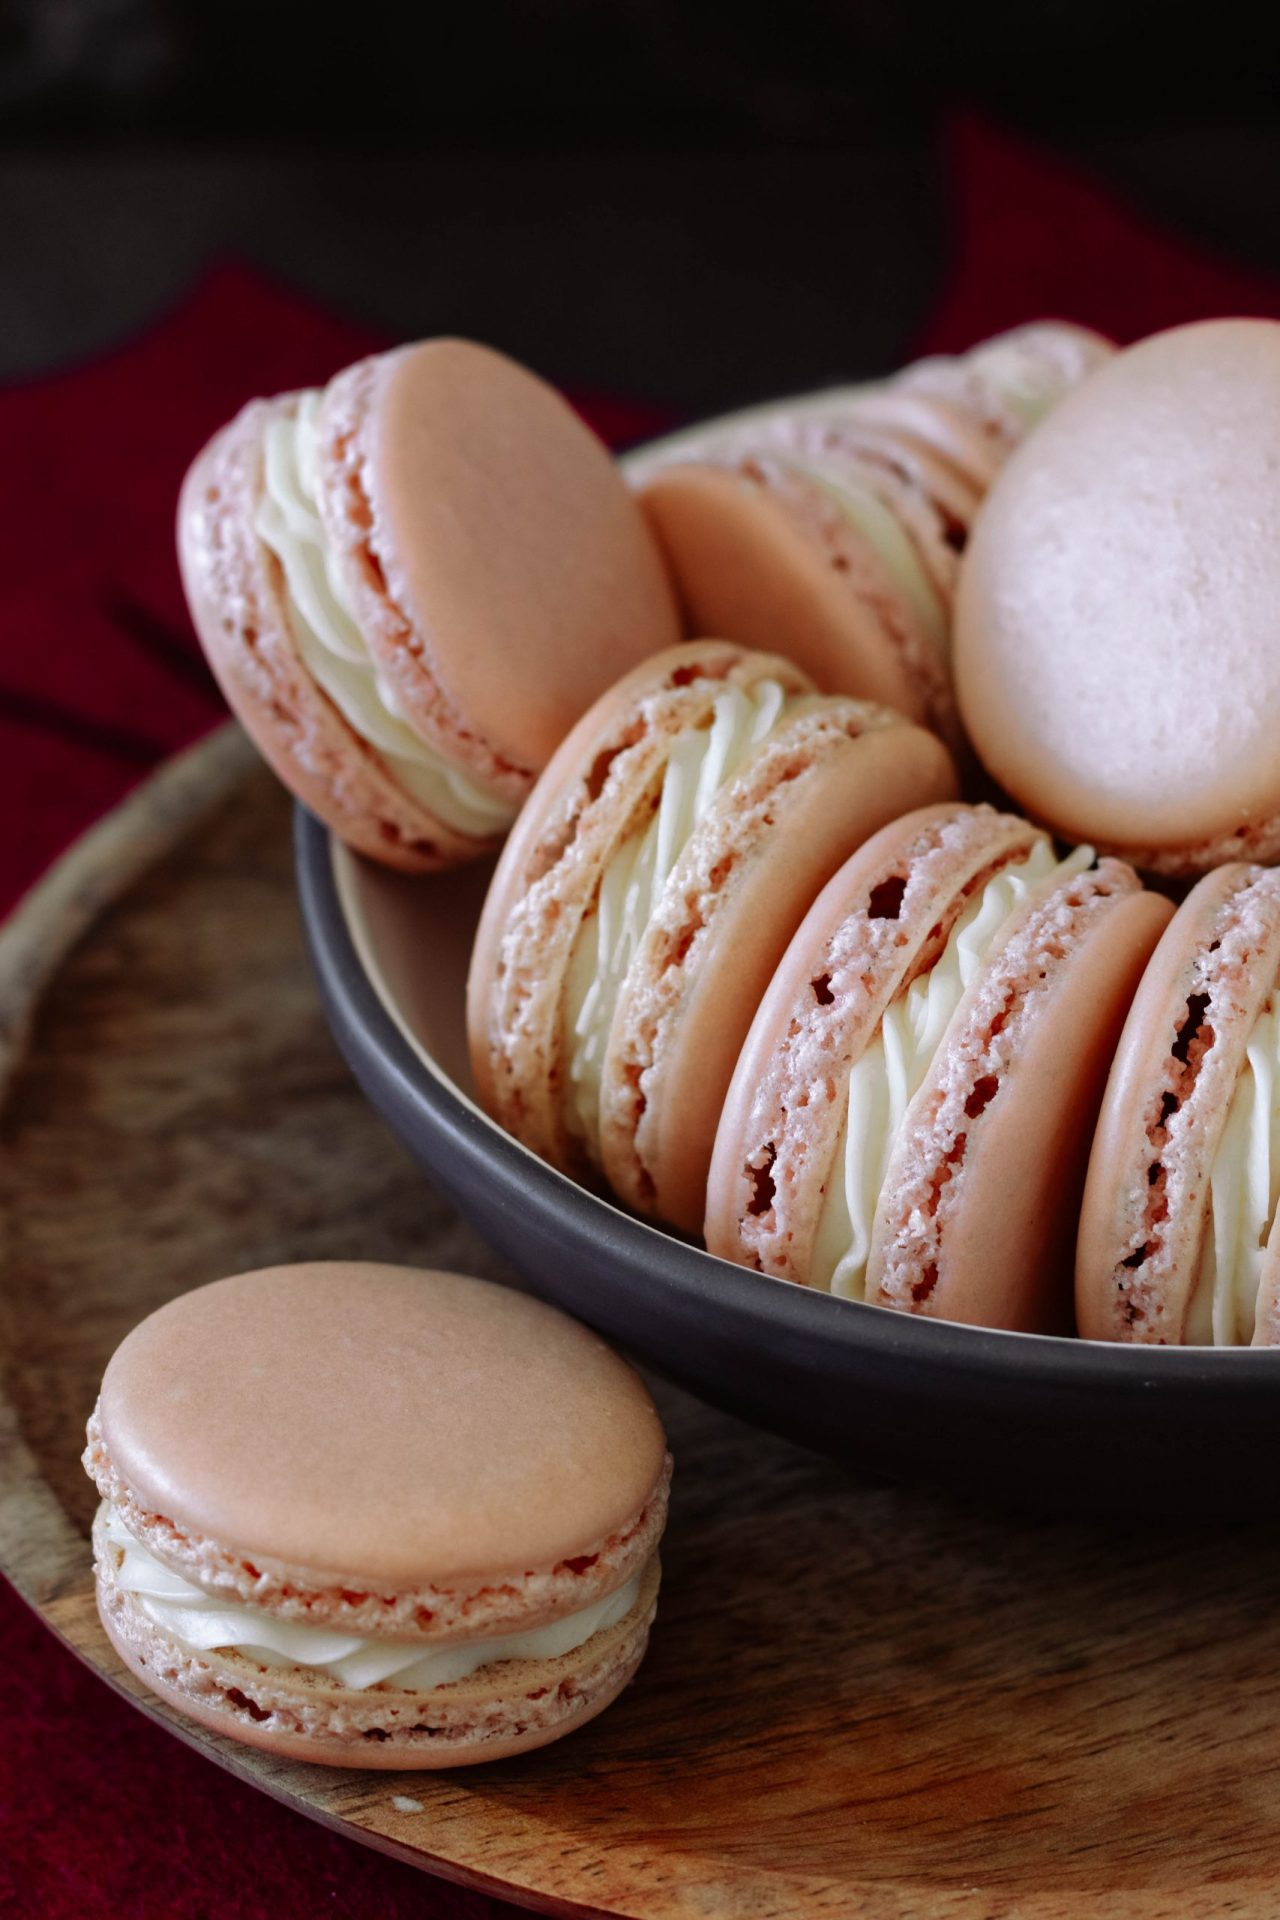 Maple Macarons https://ift.tt/3lB6jrE #IFTTT#Goodie Godmother#instagood#food#yummy#delicious#foodie#hungry#homemade#foodg